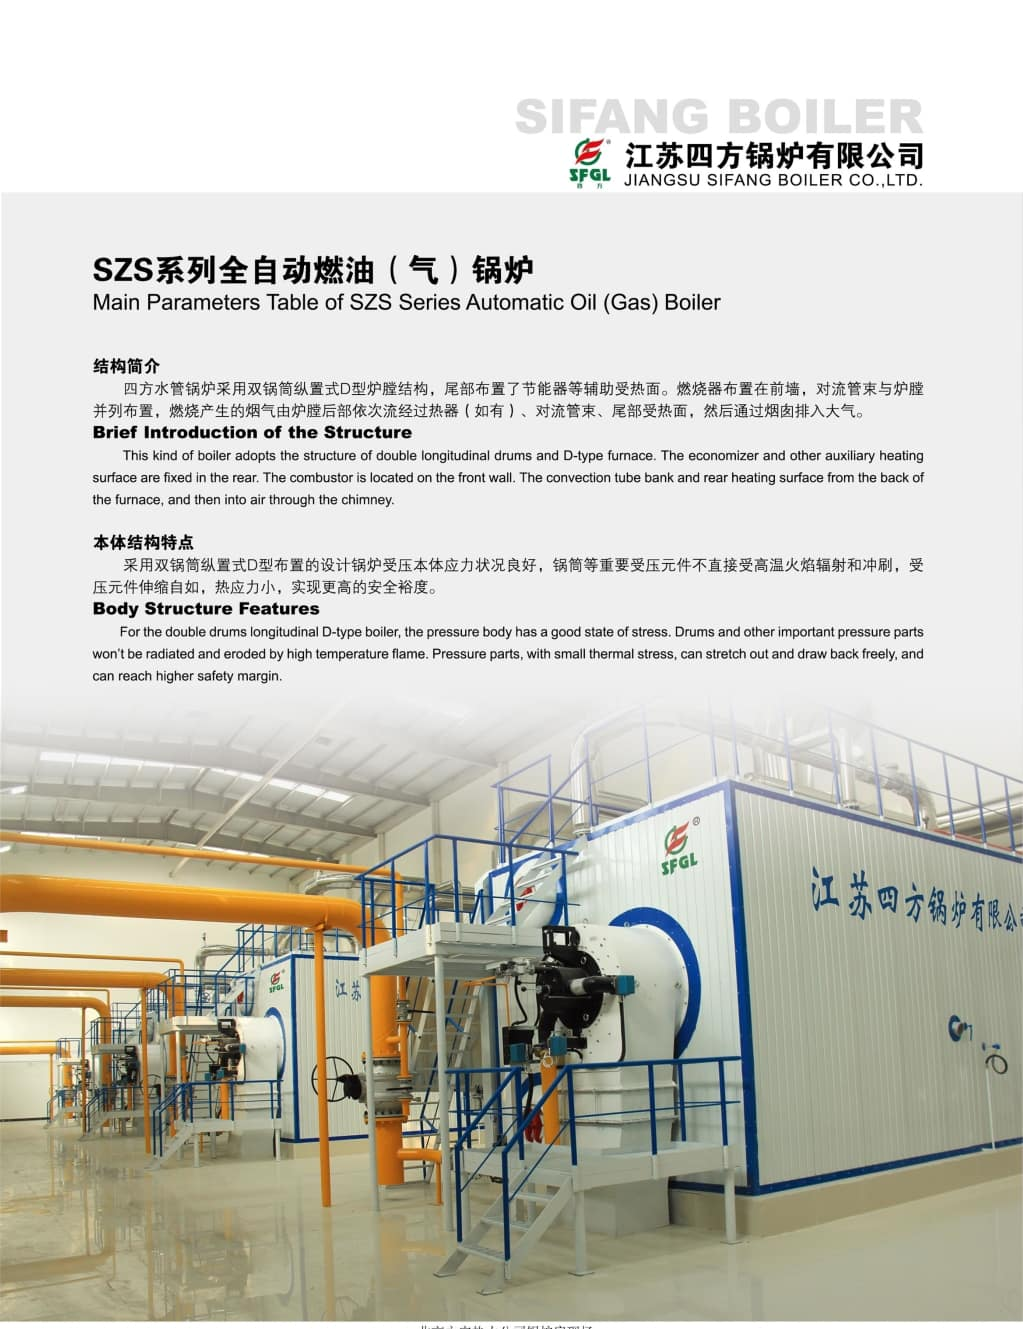 SZS series of oil (gas) fired boiler